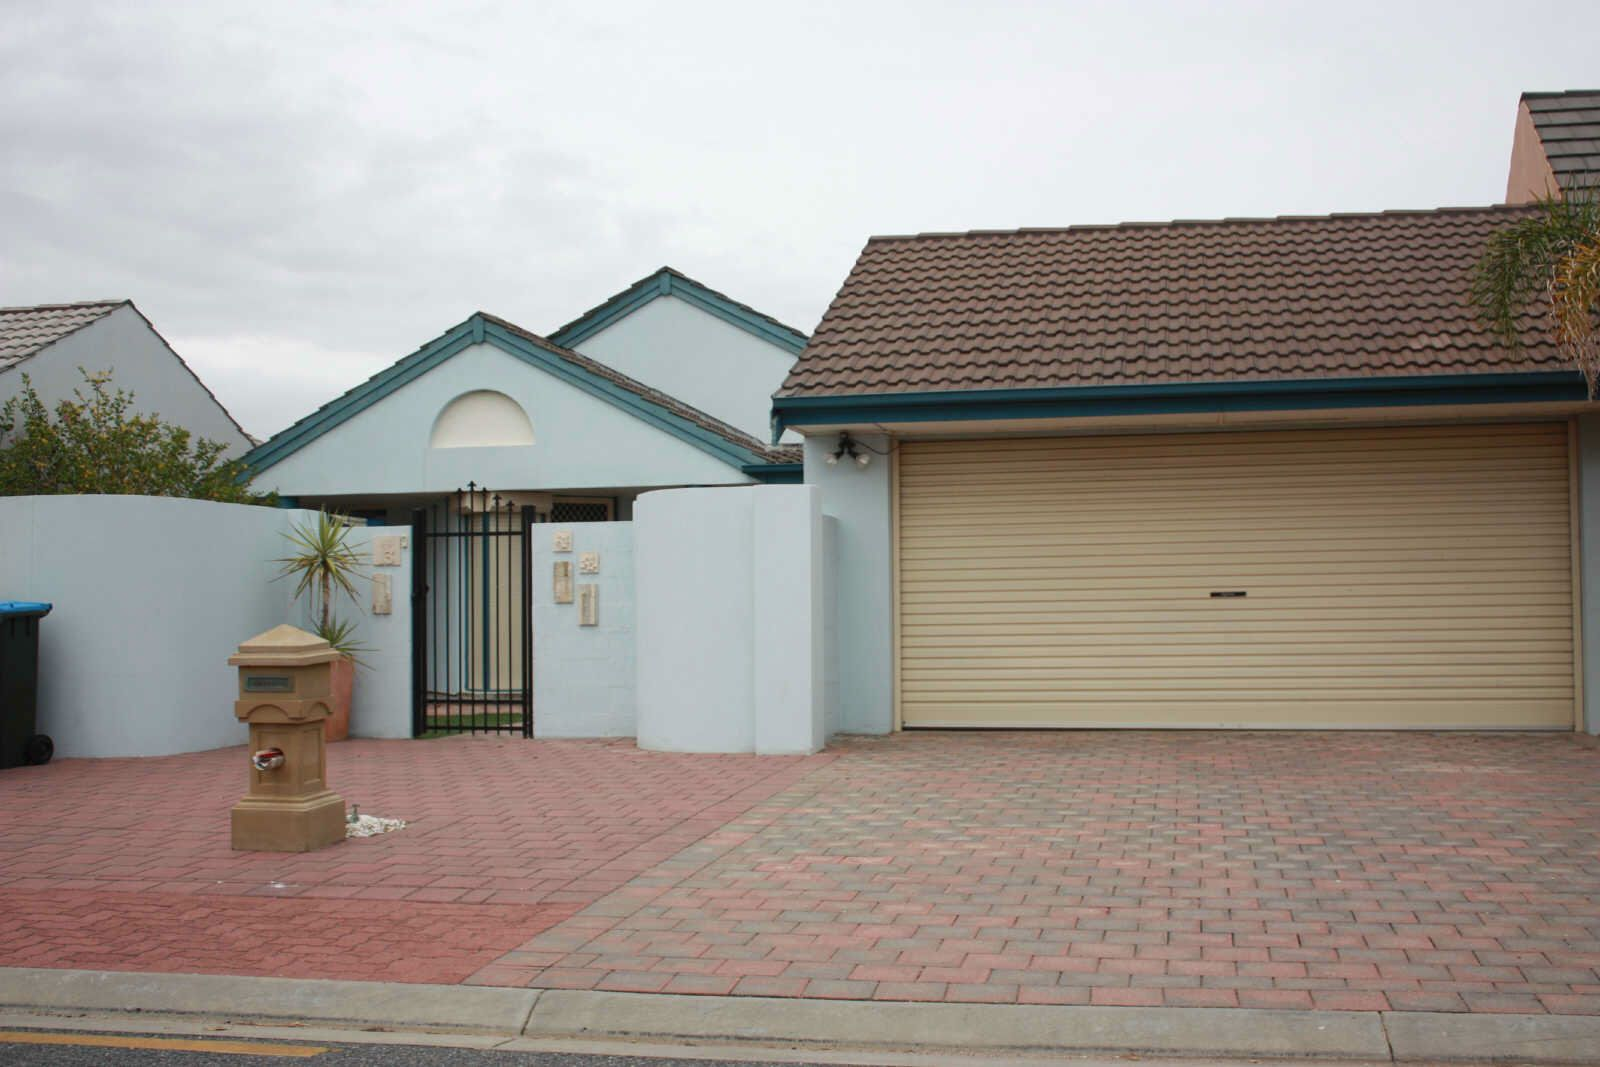 13 South Australia 1 Drive, North Haven SA 5018, Image 0